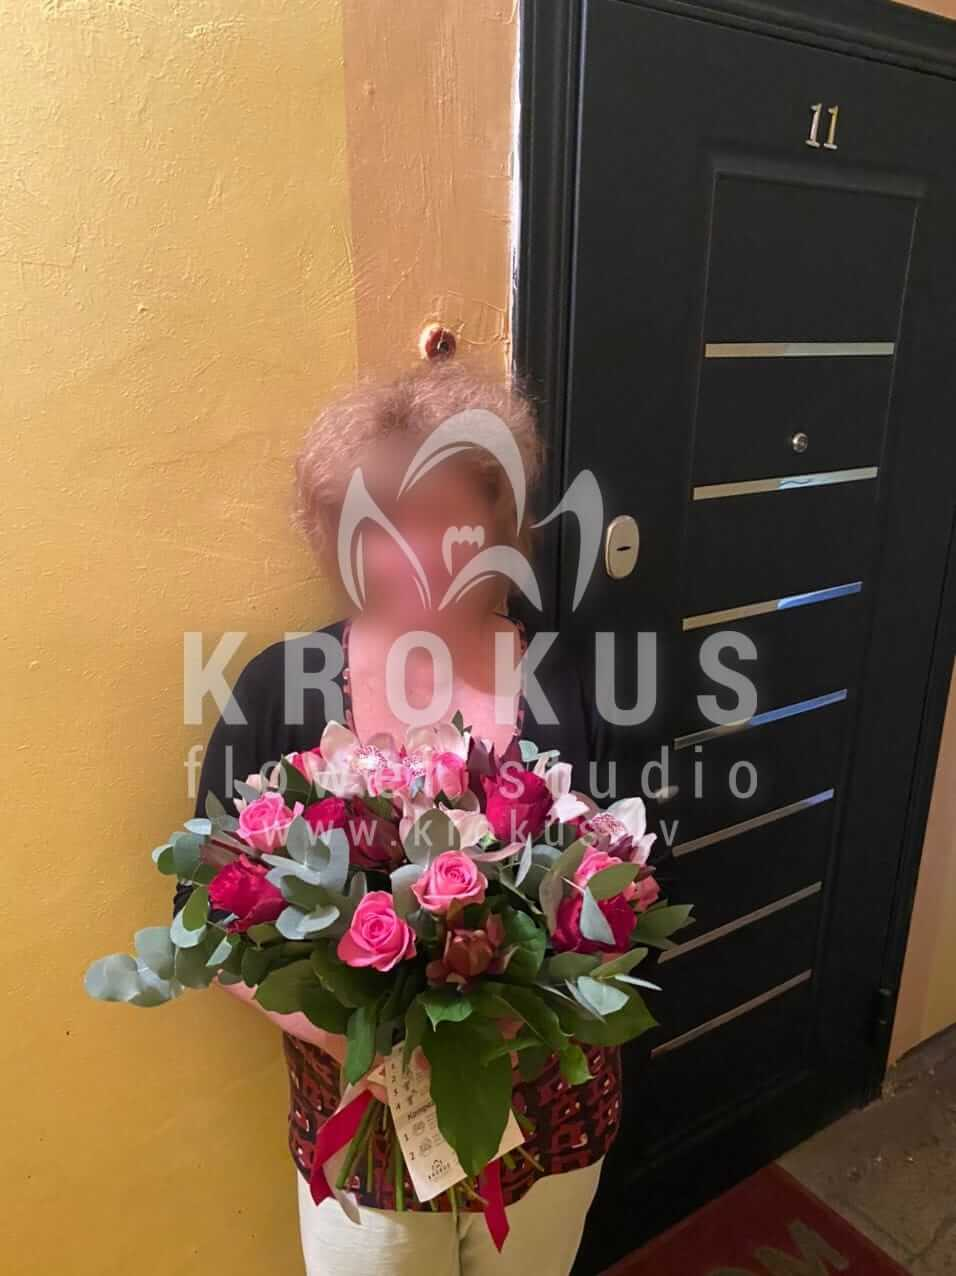 Deliver flowers to Olaine (orchidsgum treeleucadendronpink rosesred roses)